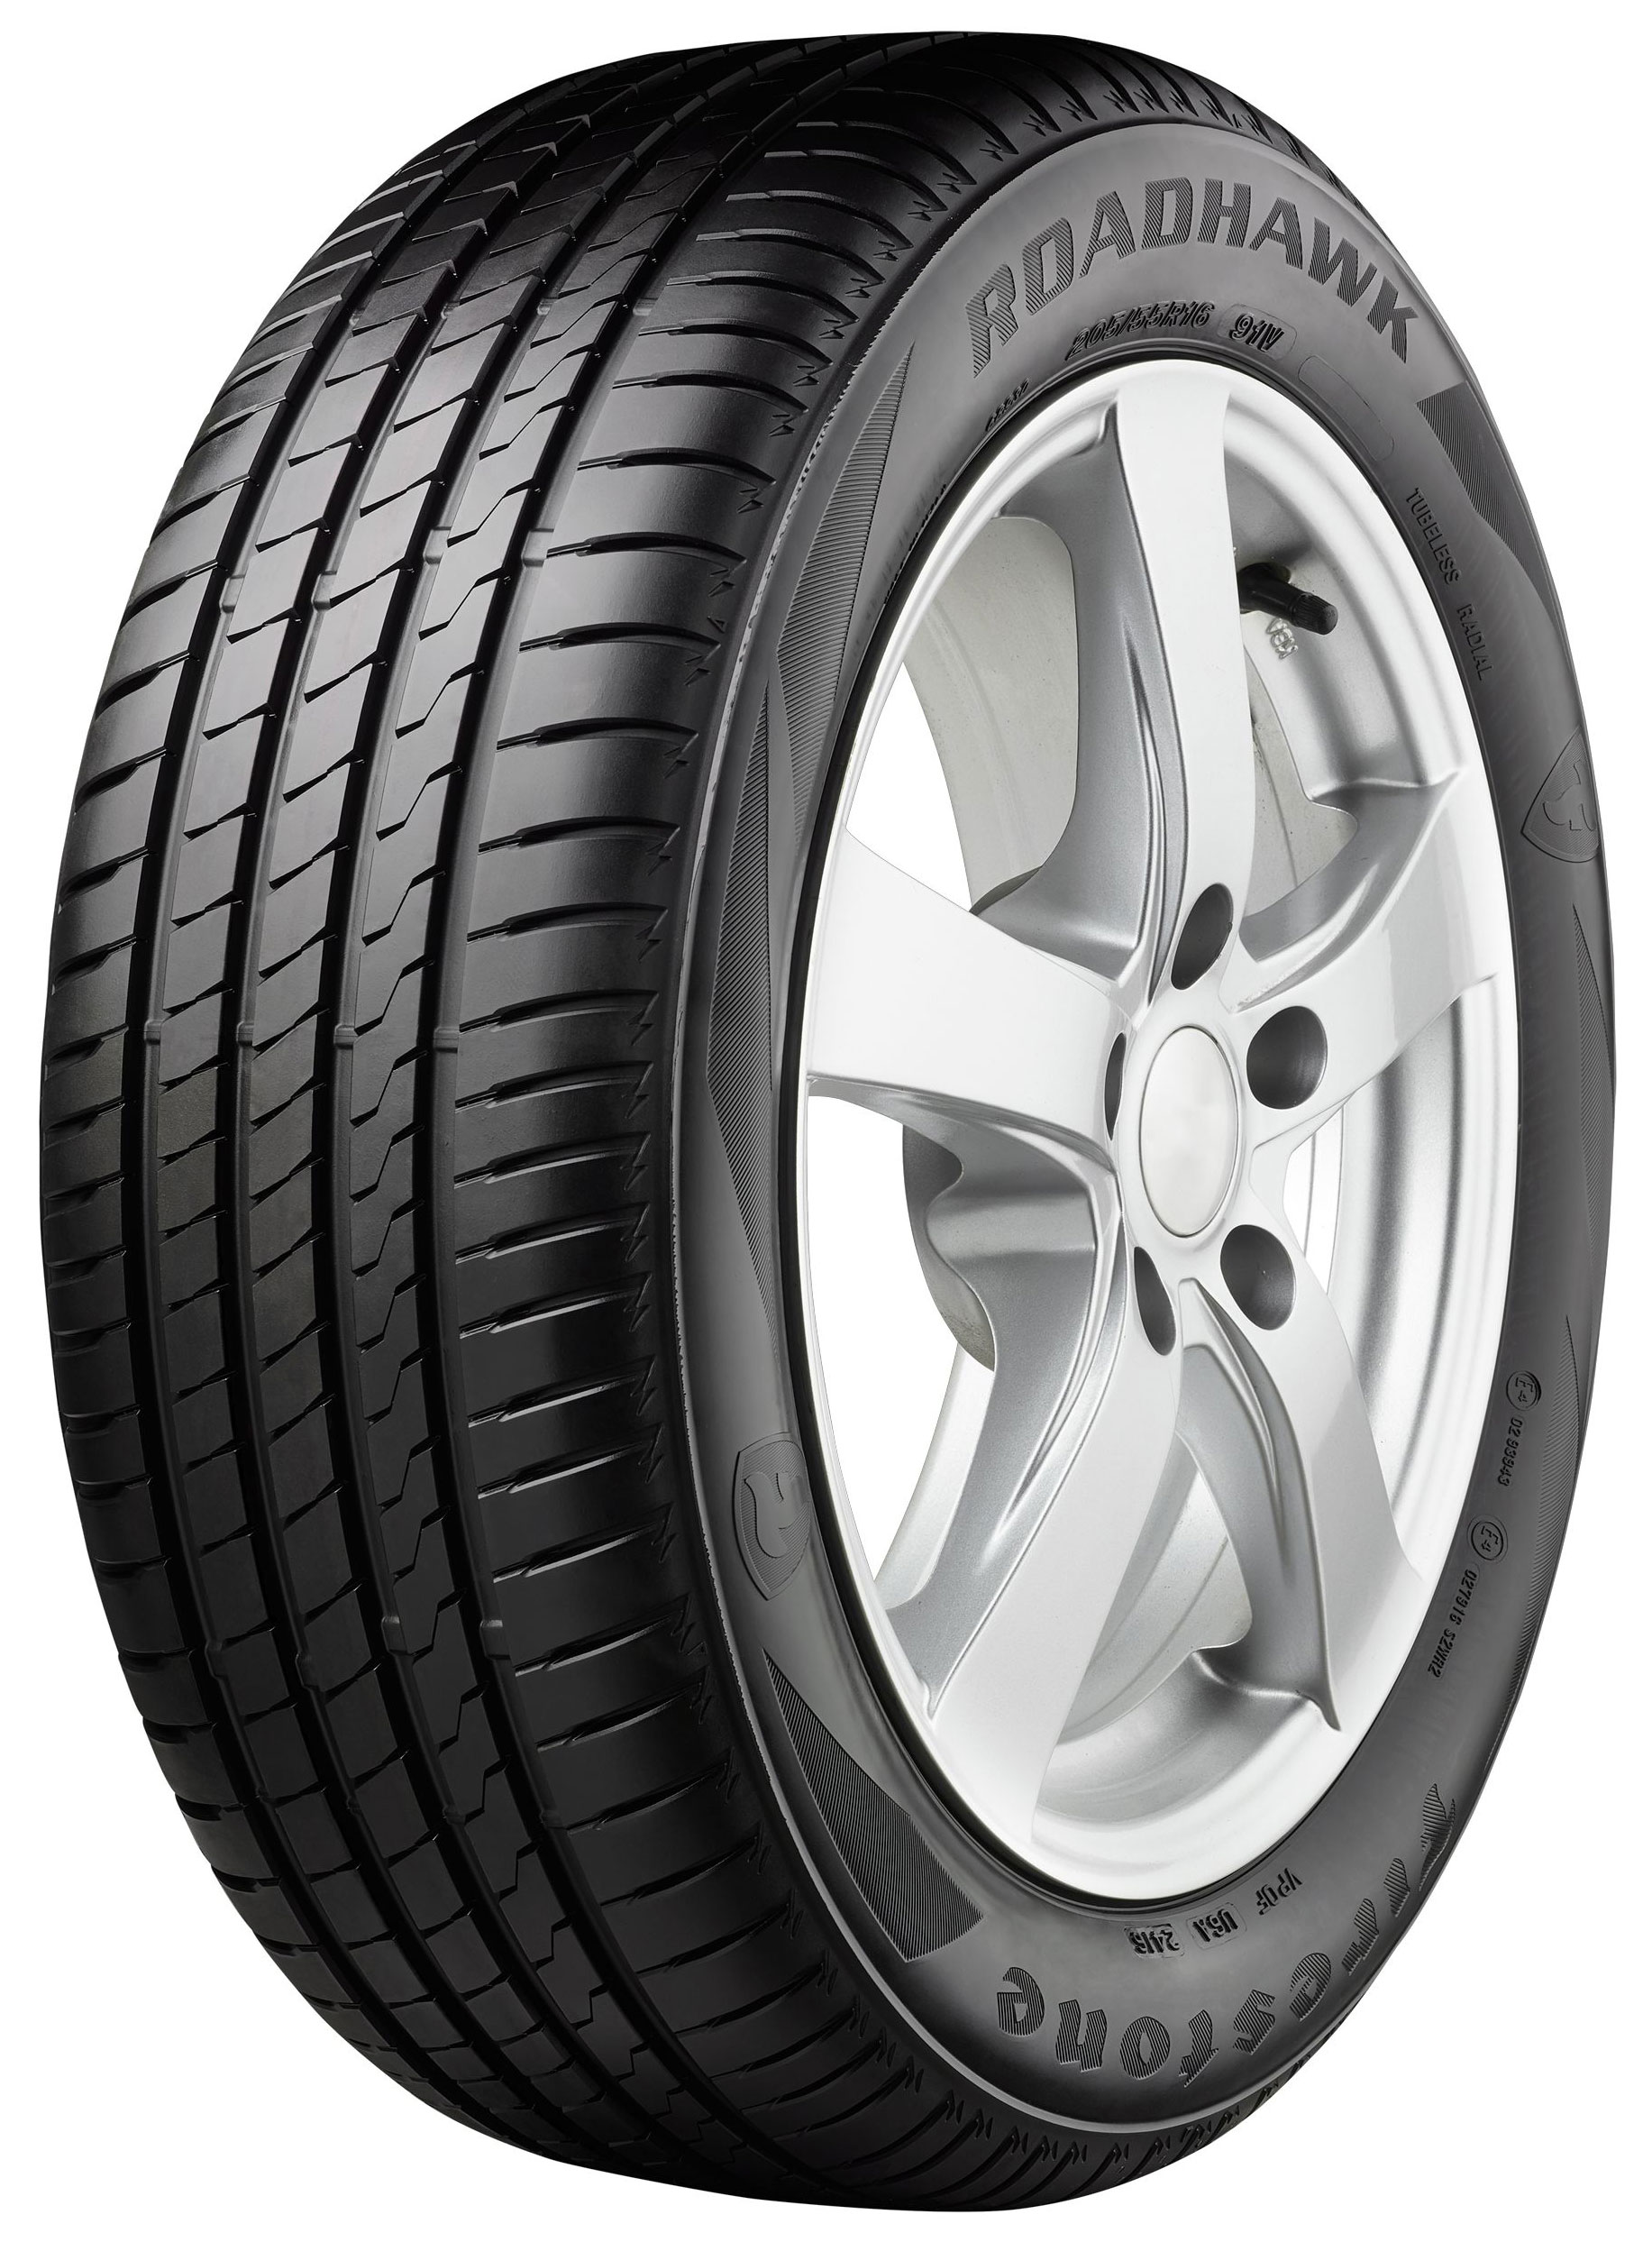 Firestone 255/35 R19 Roadhawk 96Y XL FR